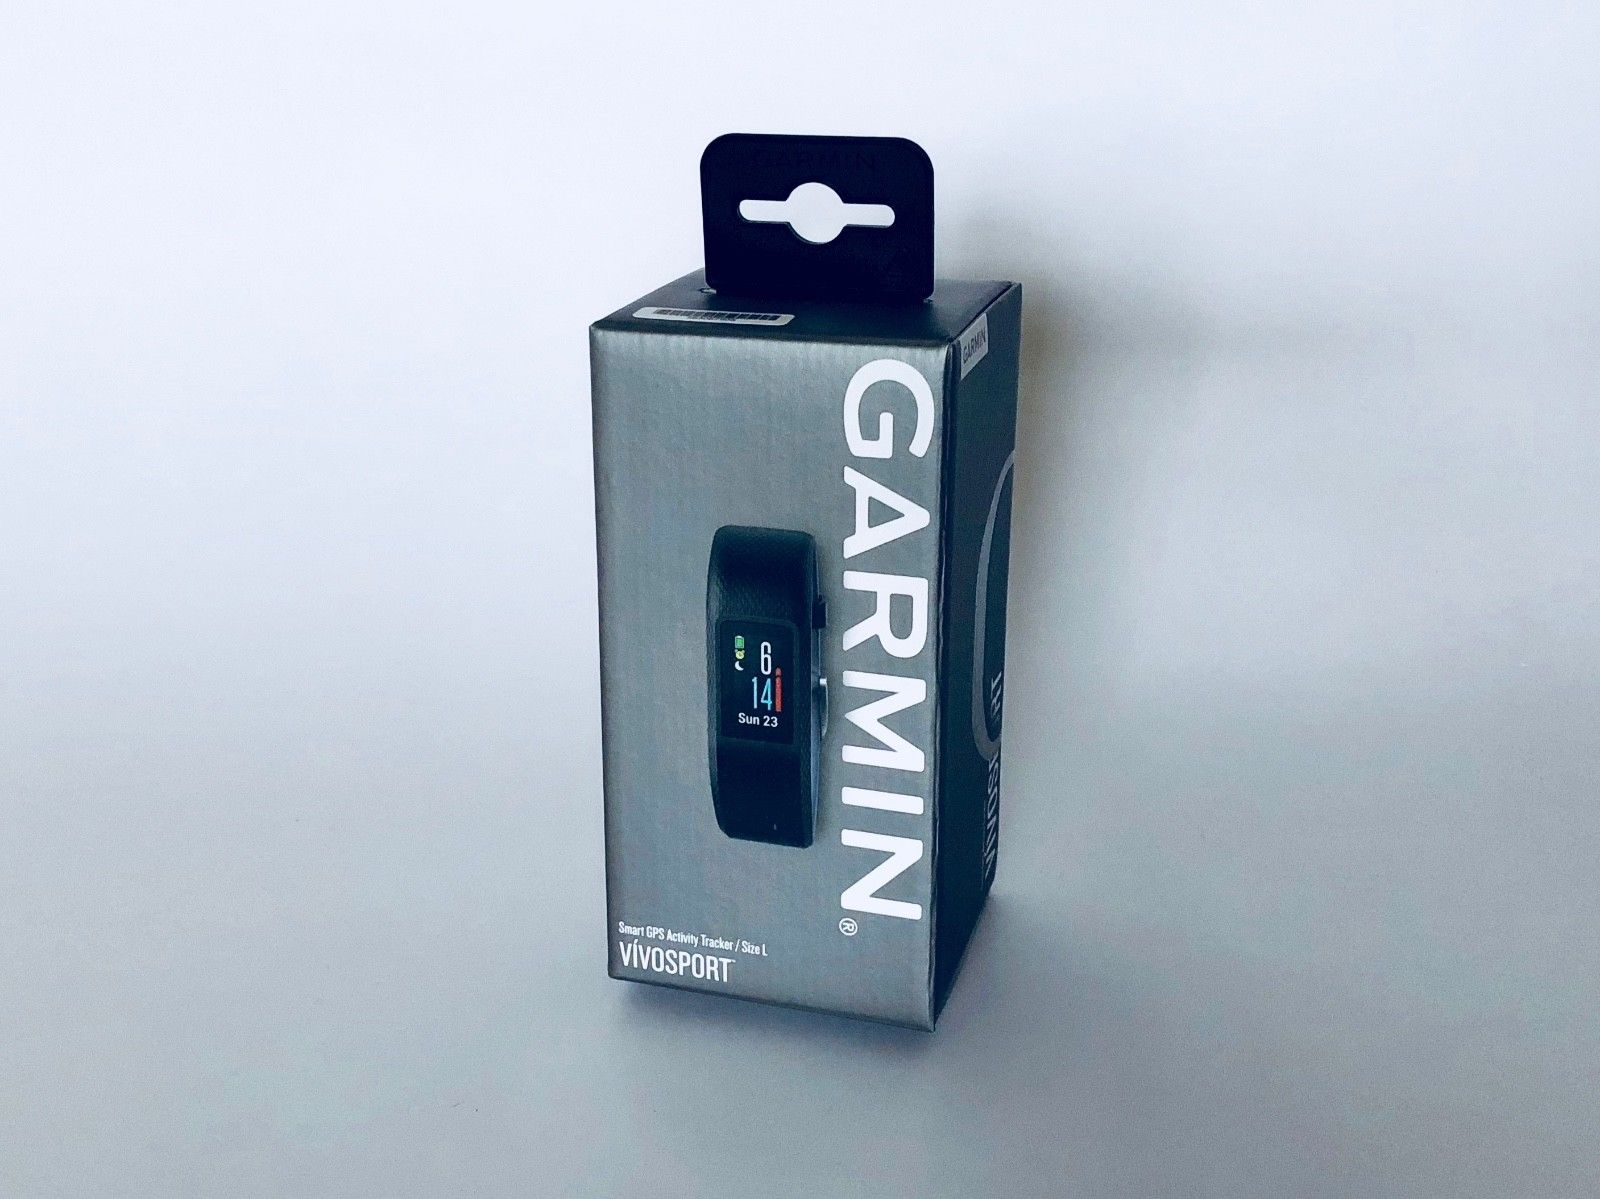 GARMIN vivosport Smart GPS Activity Tracker - Größe L - schwarz